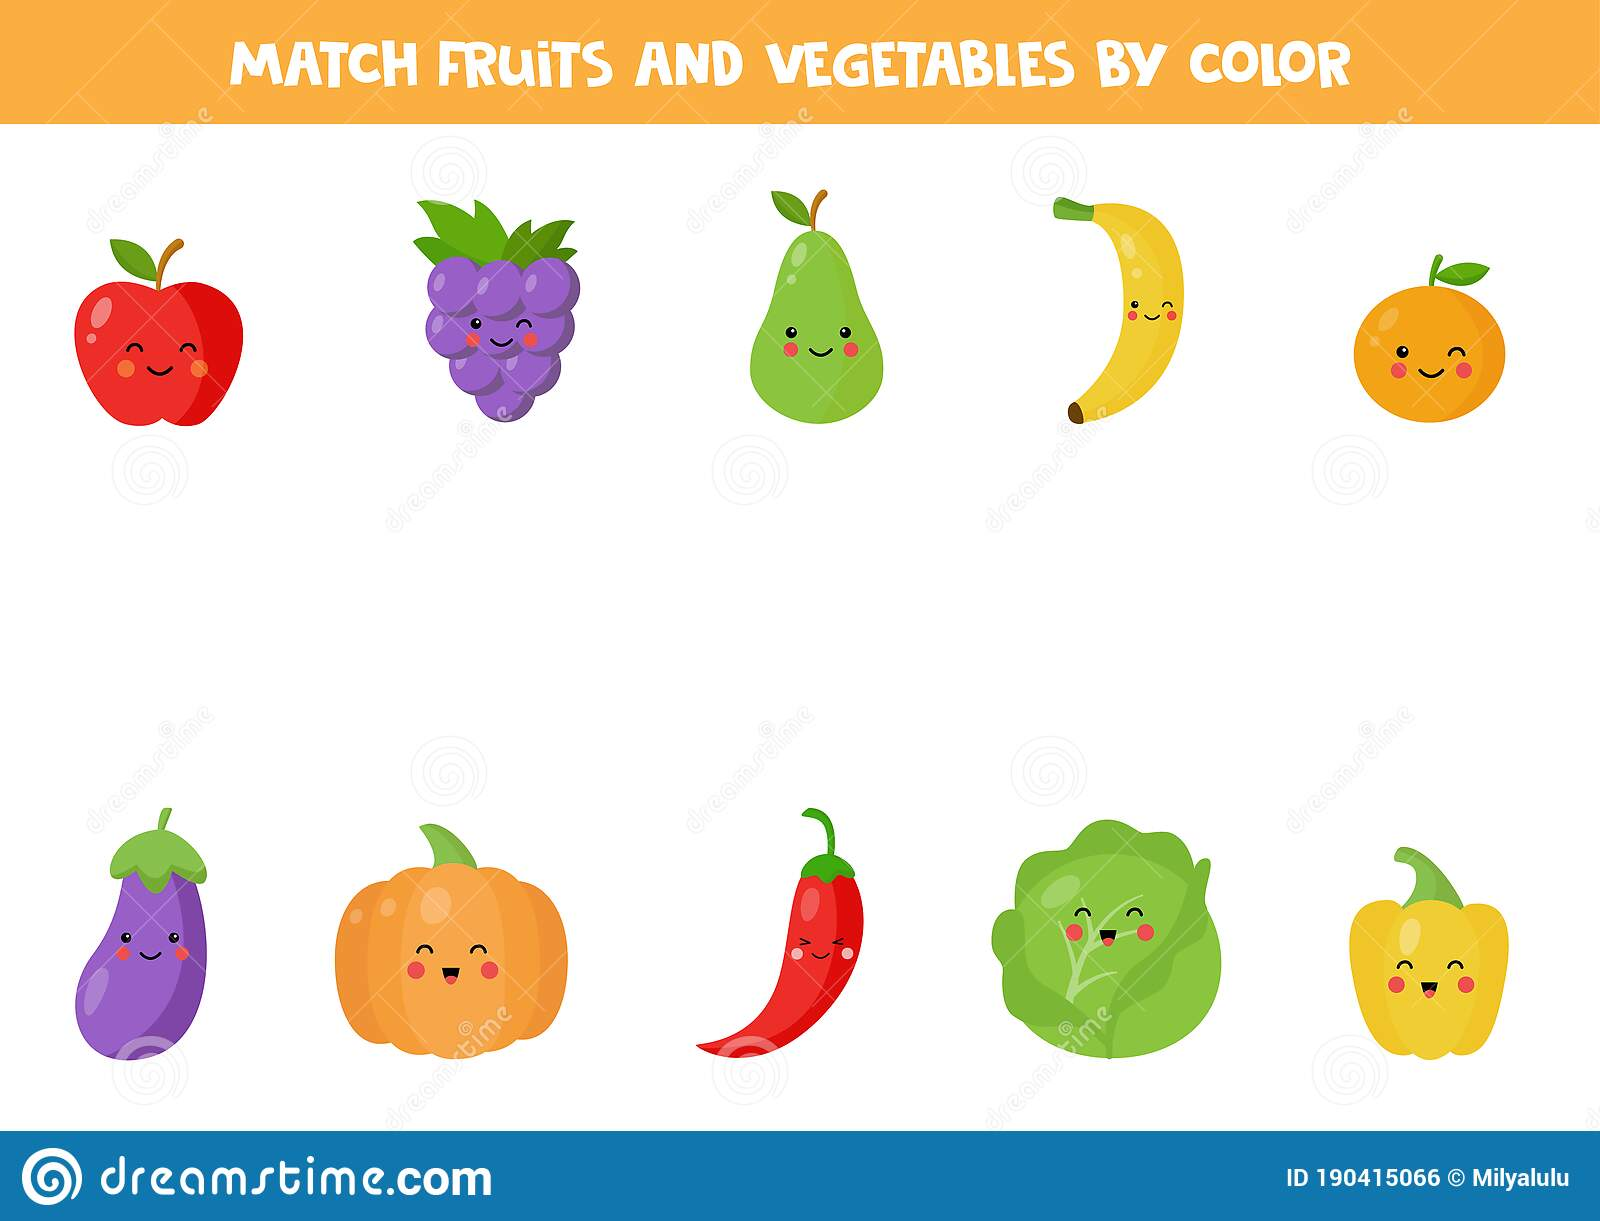 Color Matching Game With Cute Kawaii Fruits And Vegetables